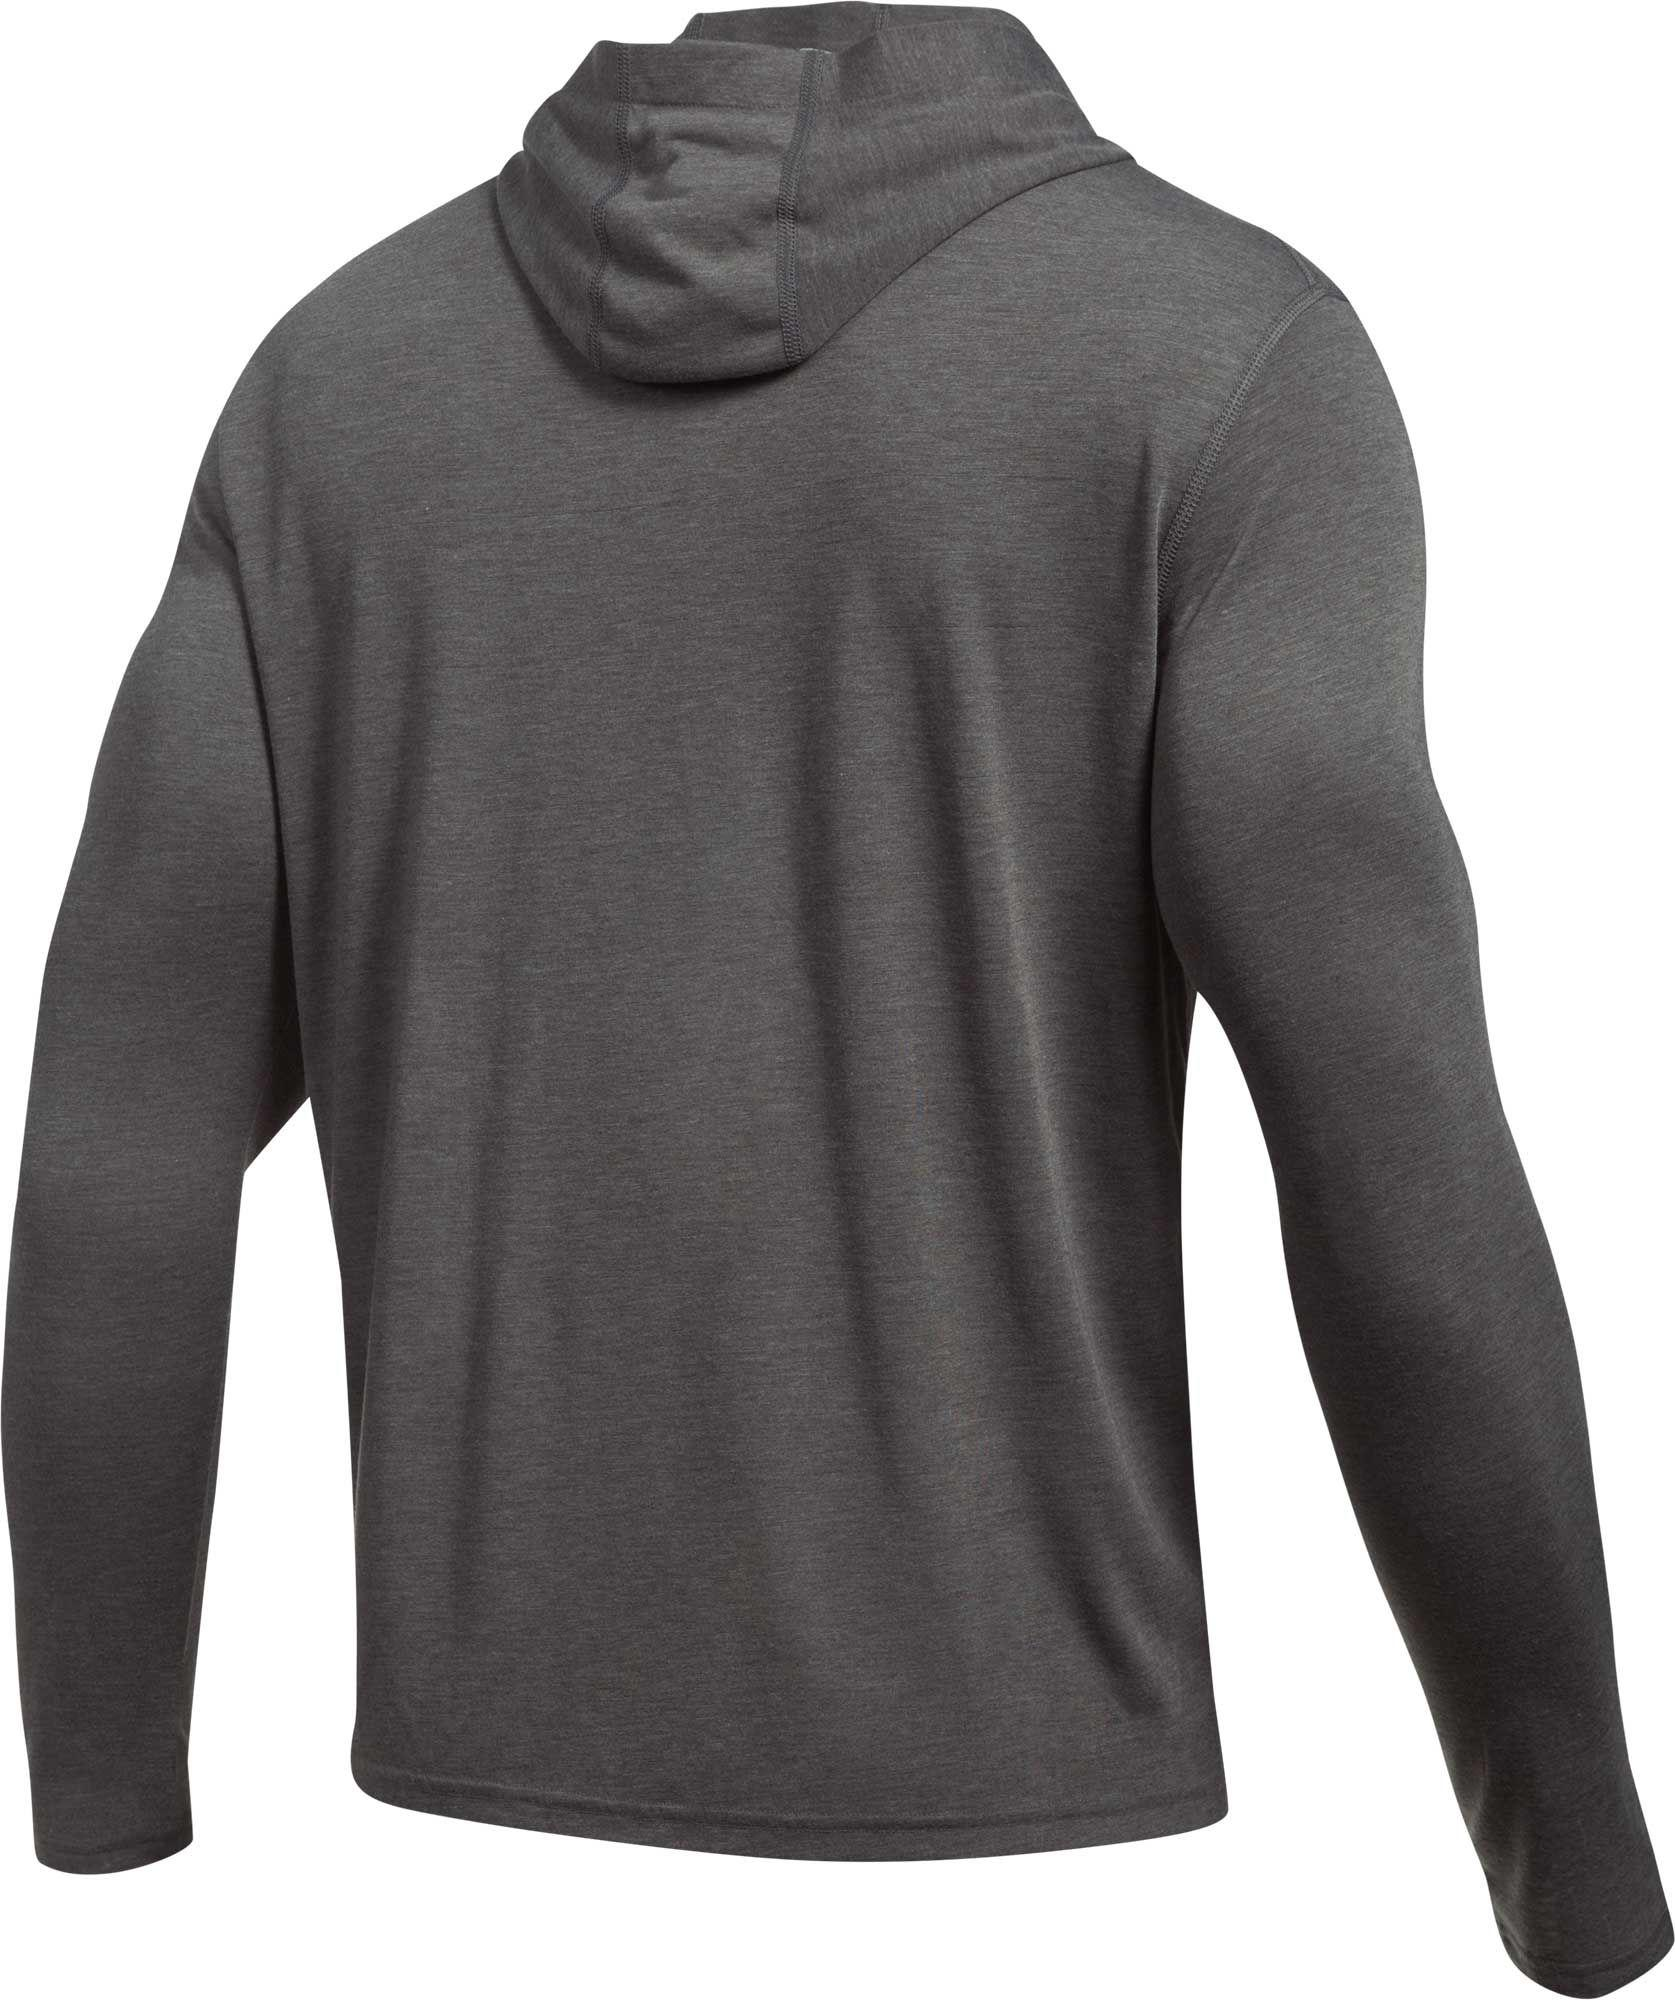 NEW Large UNDER ARMOUR UA TECH POPOVER HENLEY HOODIE LONG SLEEVE SHIRT MSRP $45